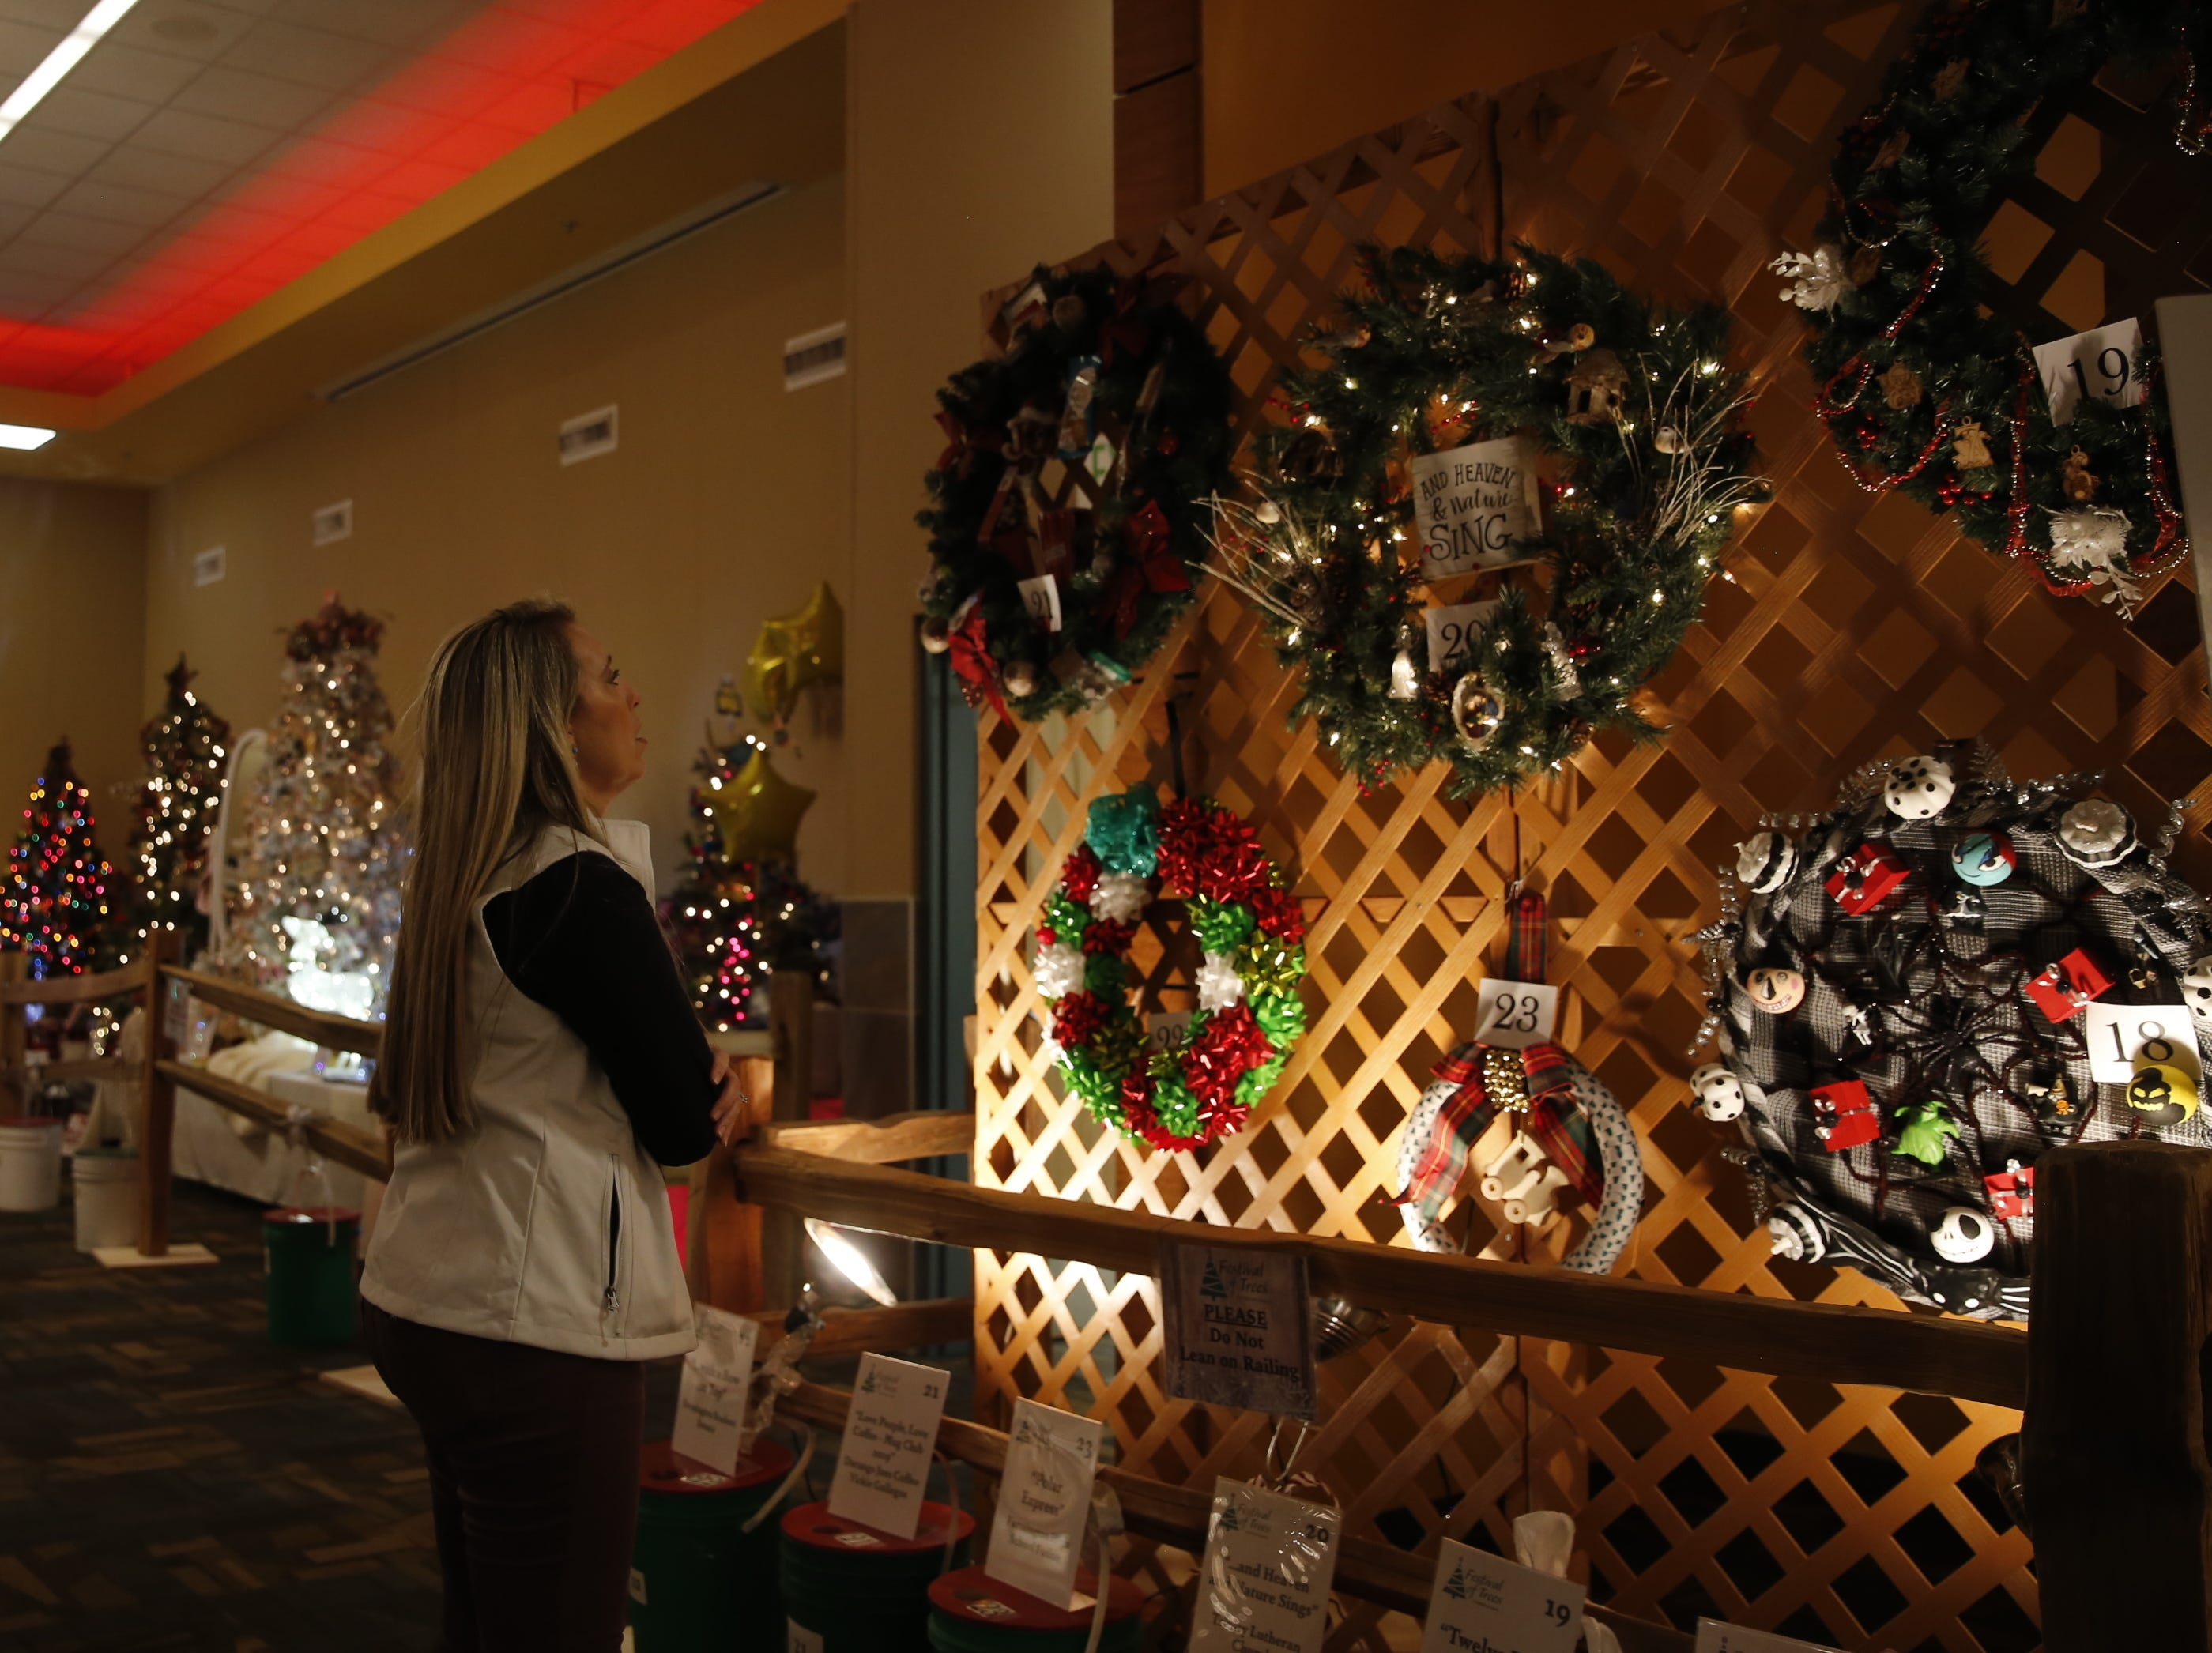 Hazel Jackson looks at wreaths displayed, Wednesday, Nov. 28, 2018, during Festival of Trees at the Farmington Civic Center.